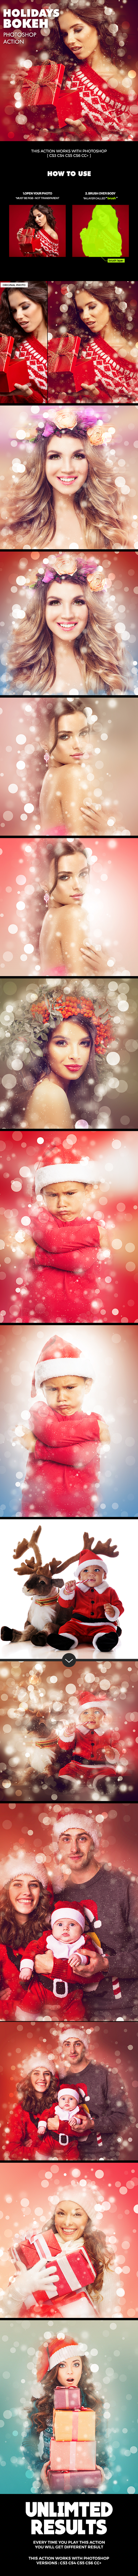 Holidays Bokeh Photoshop Action - Photo Effects Actions